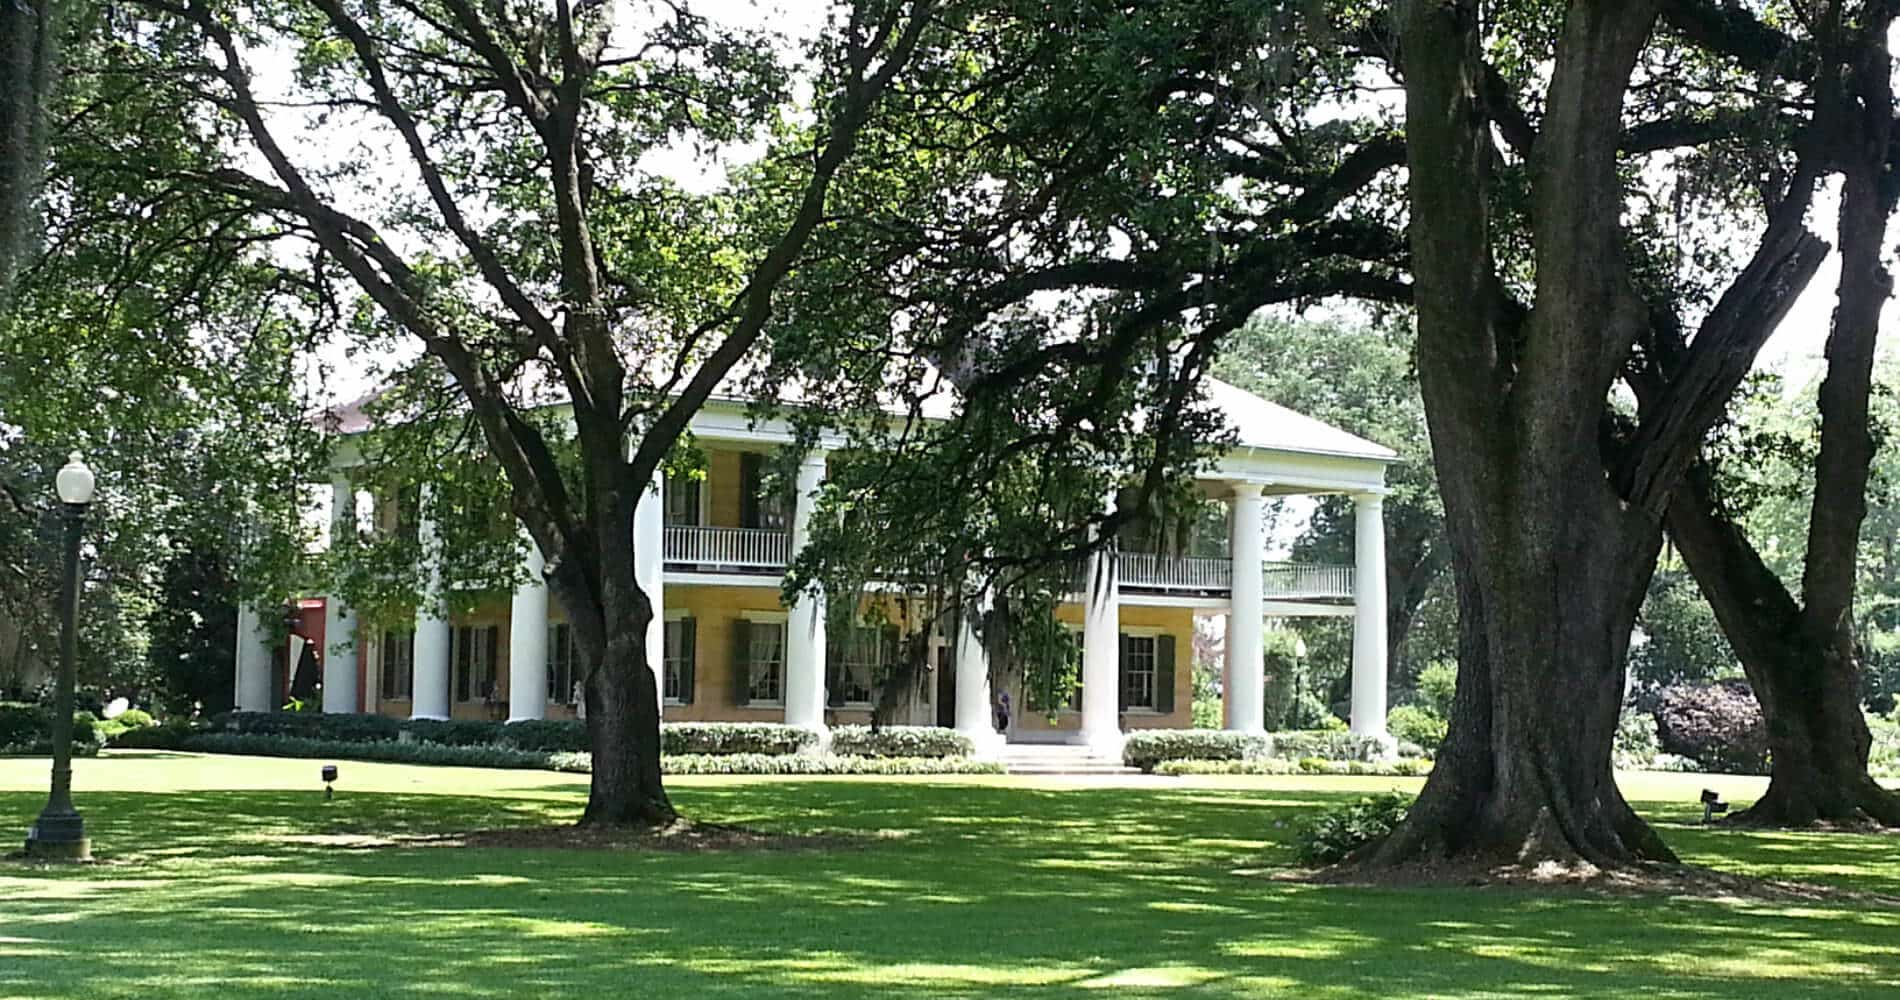 Plantation home with yellow walls, white columns all around, oak trees on property, bright green grass